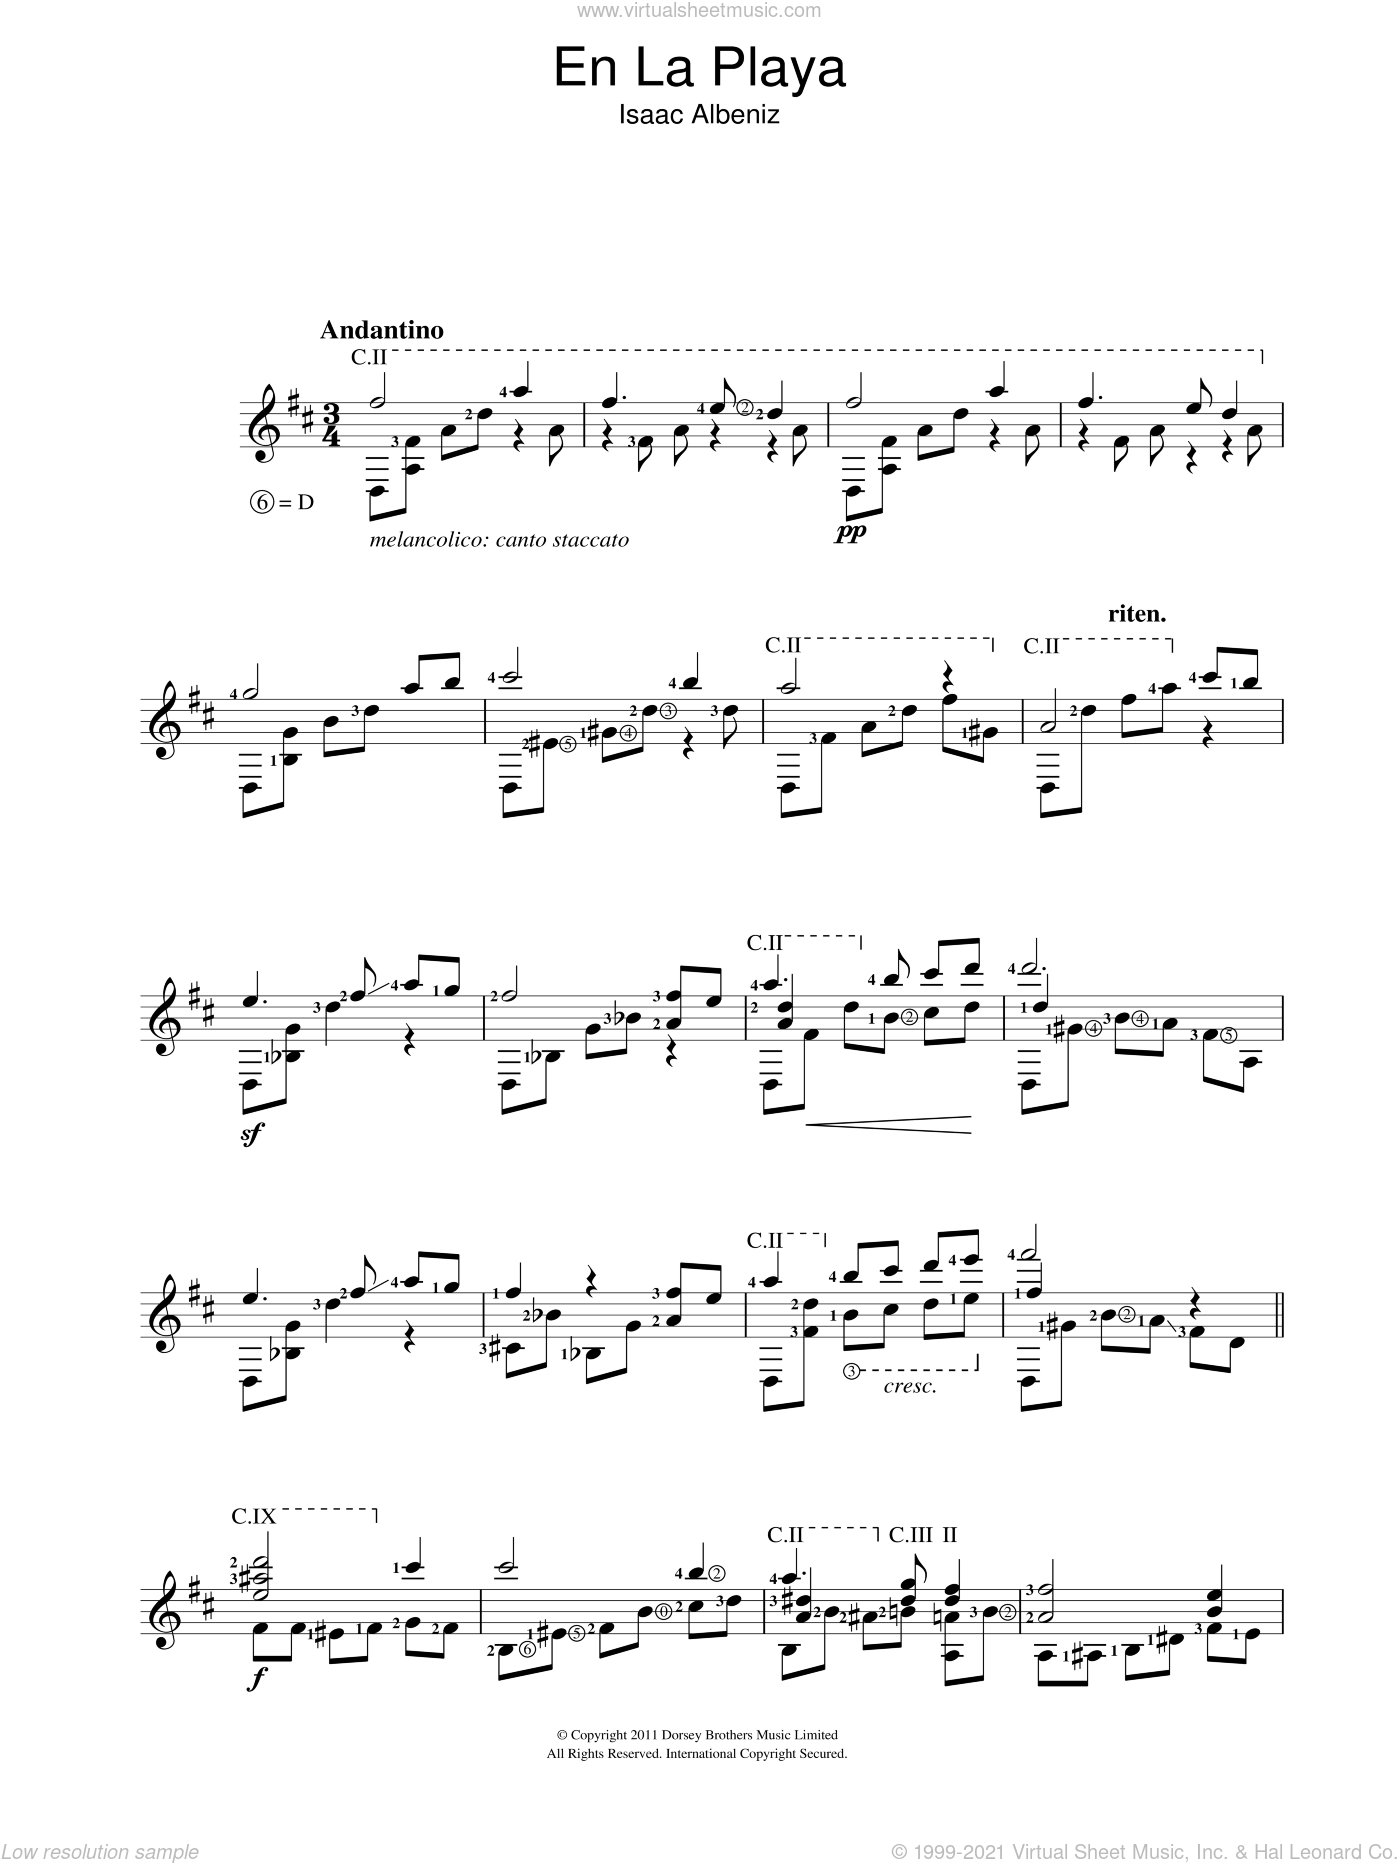 En La Playa sheet music for guitar solo (chords) by Isaac Albeniz. Score Image Preview.